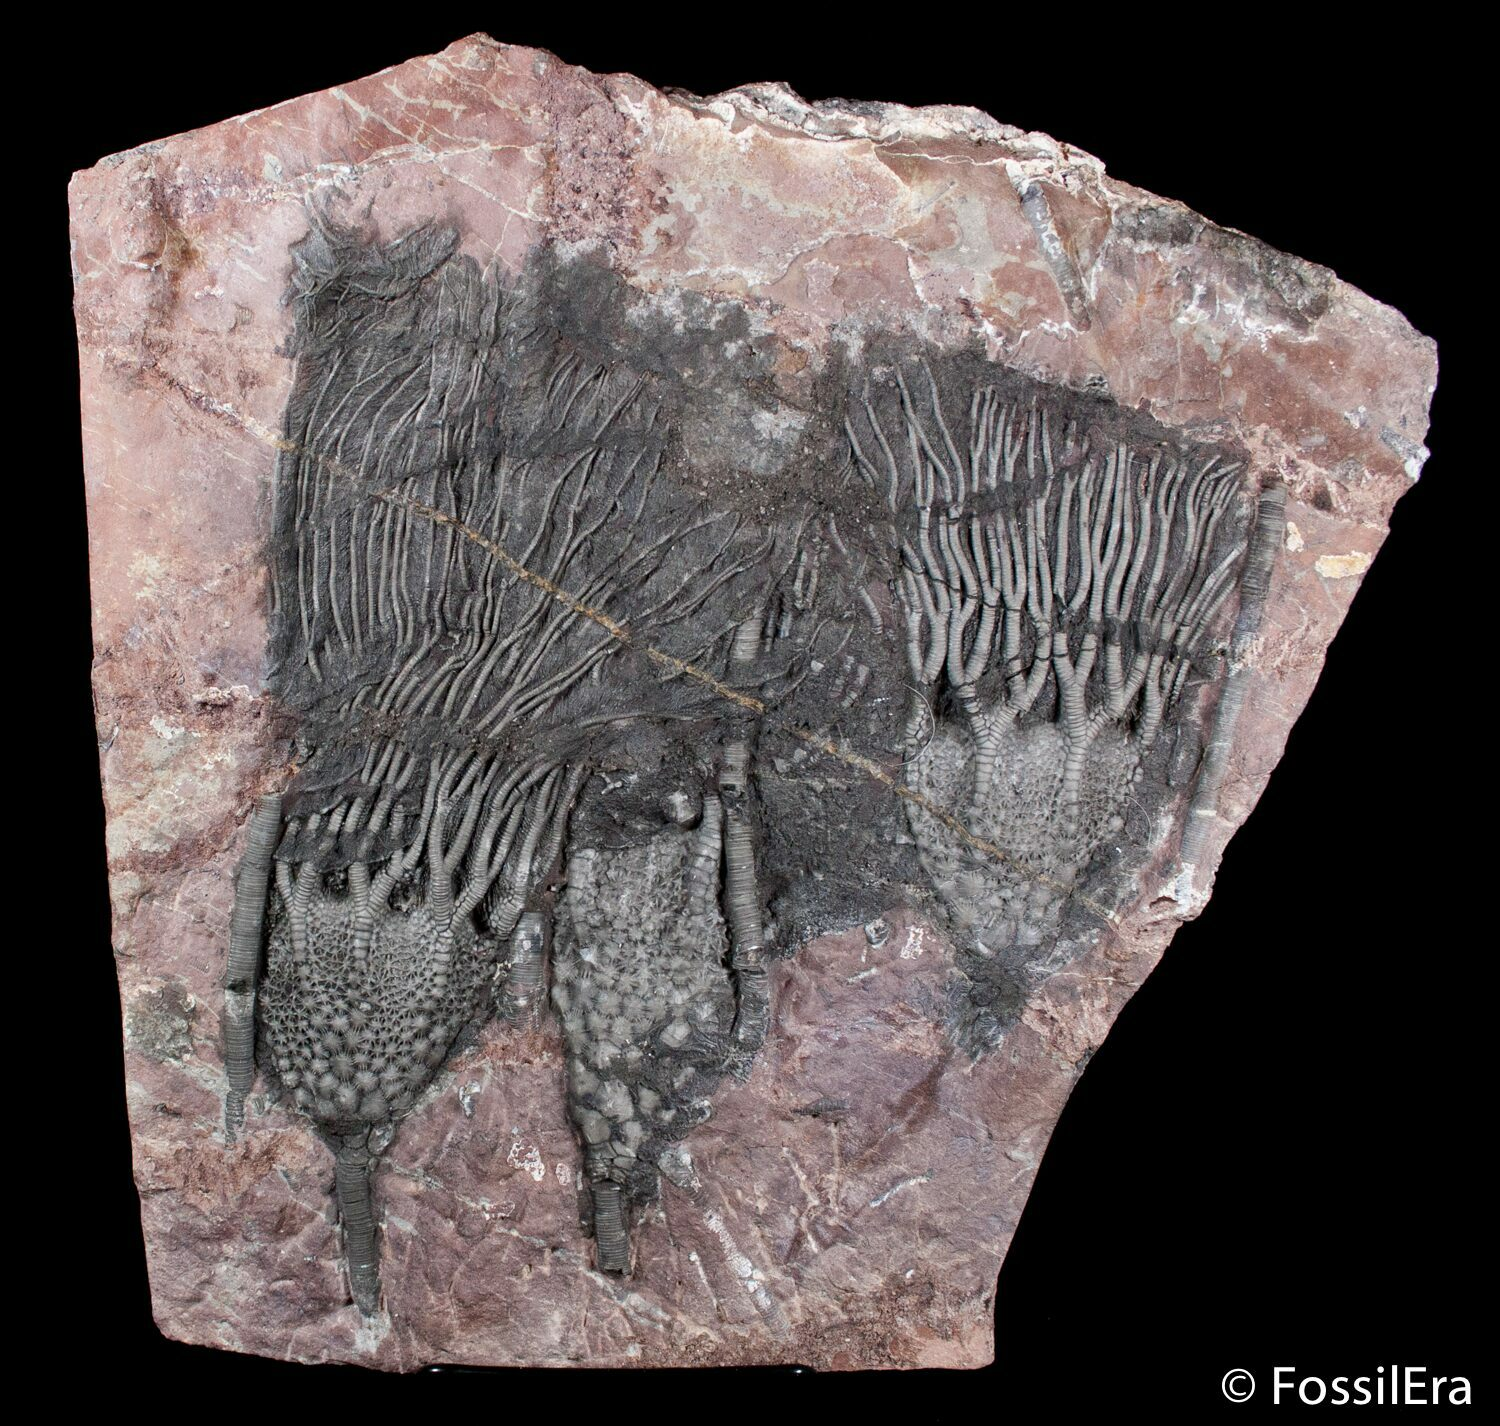 What Are Crinoids Fossils